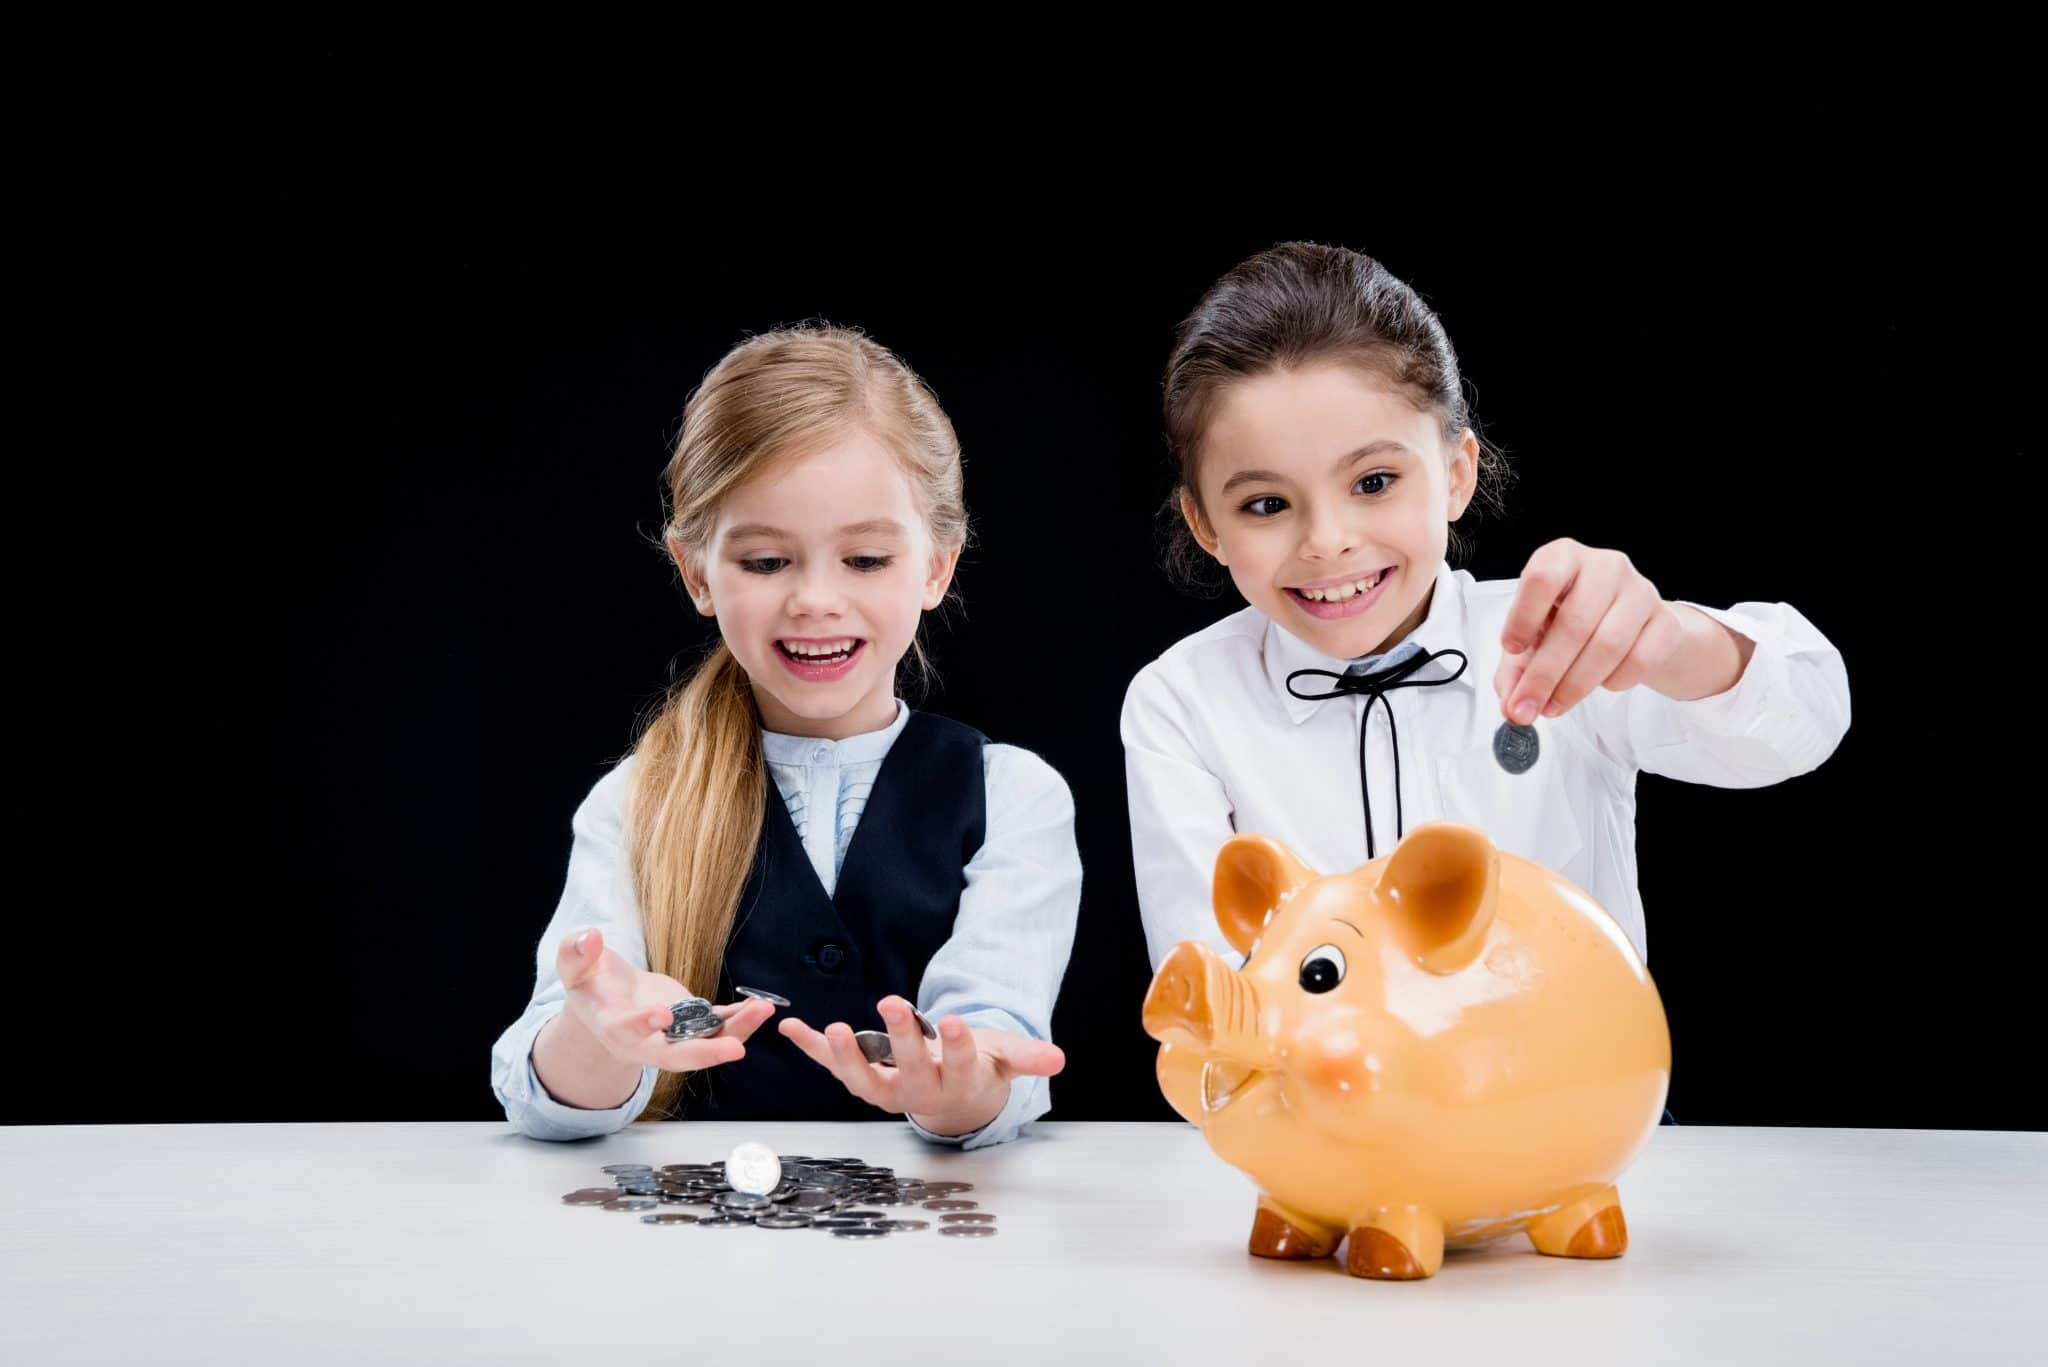 Divorce finances with the kids in mind coparenter Kids in mind